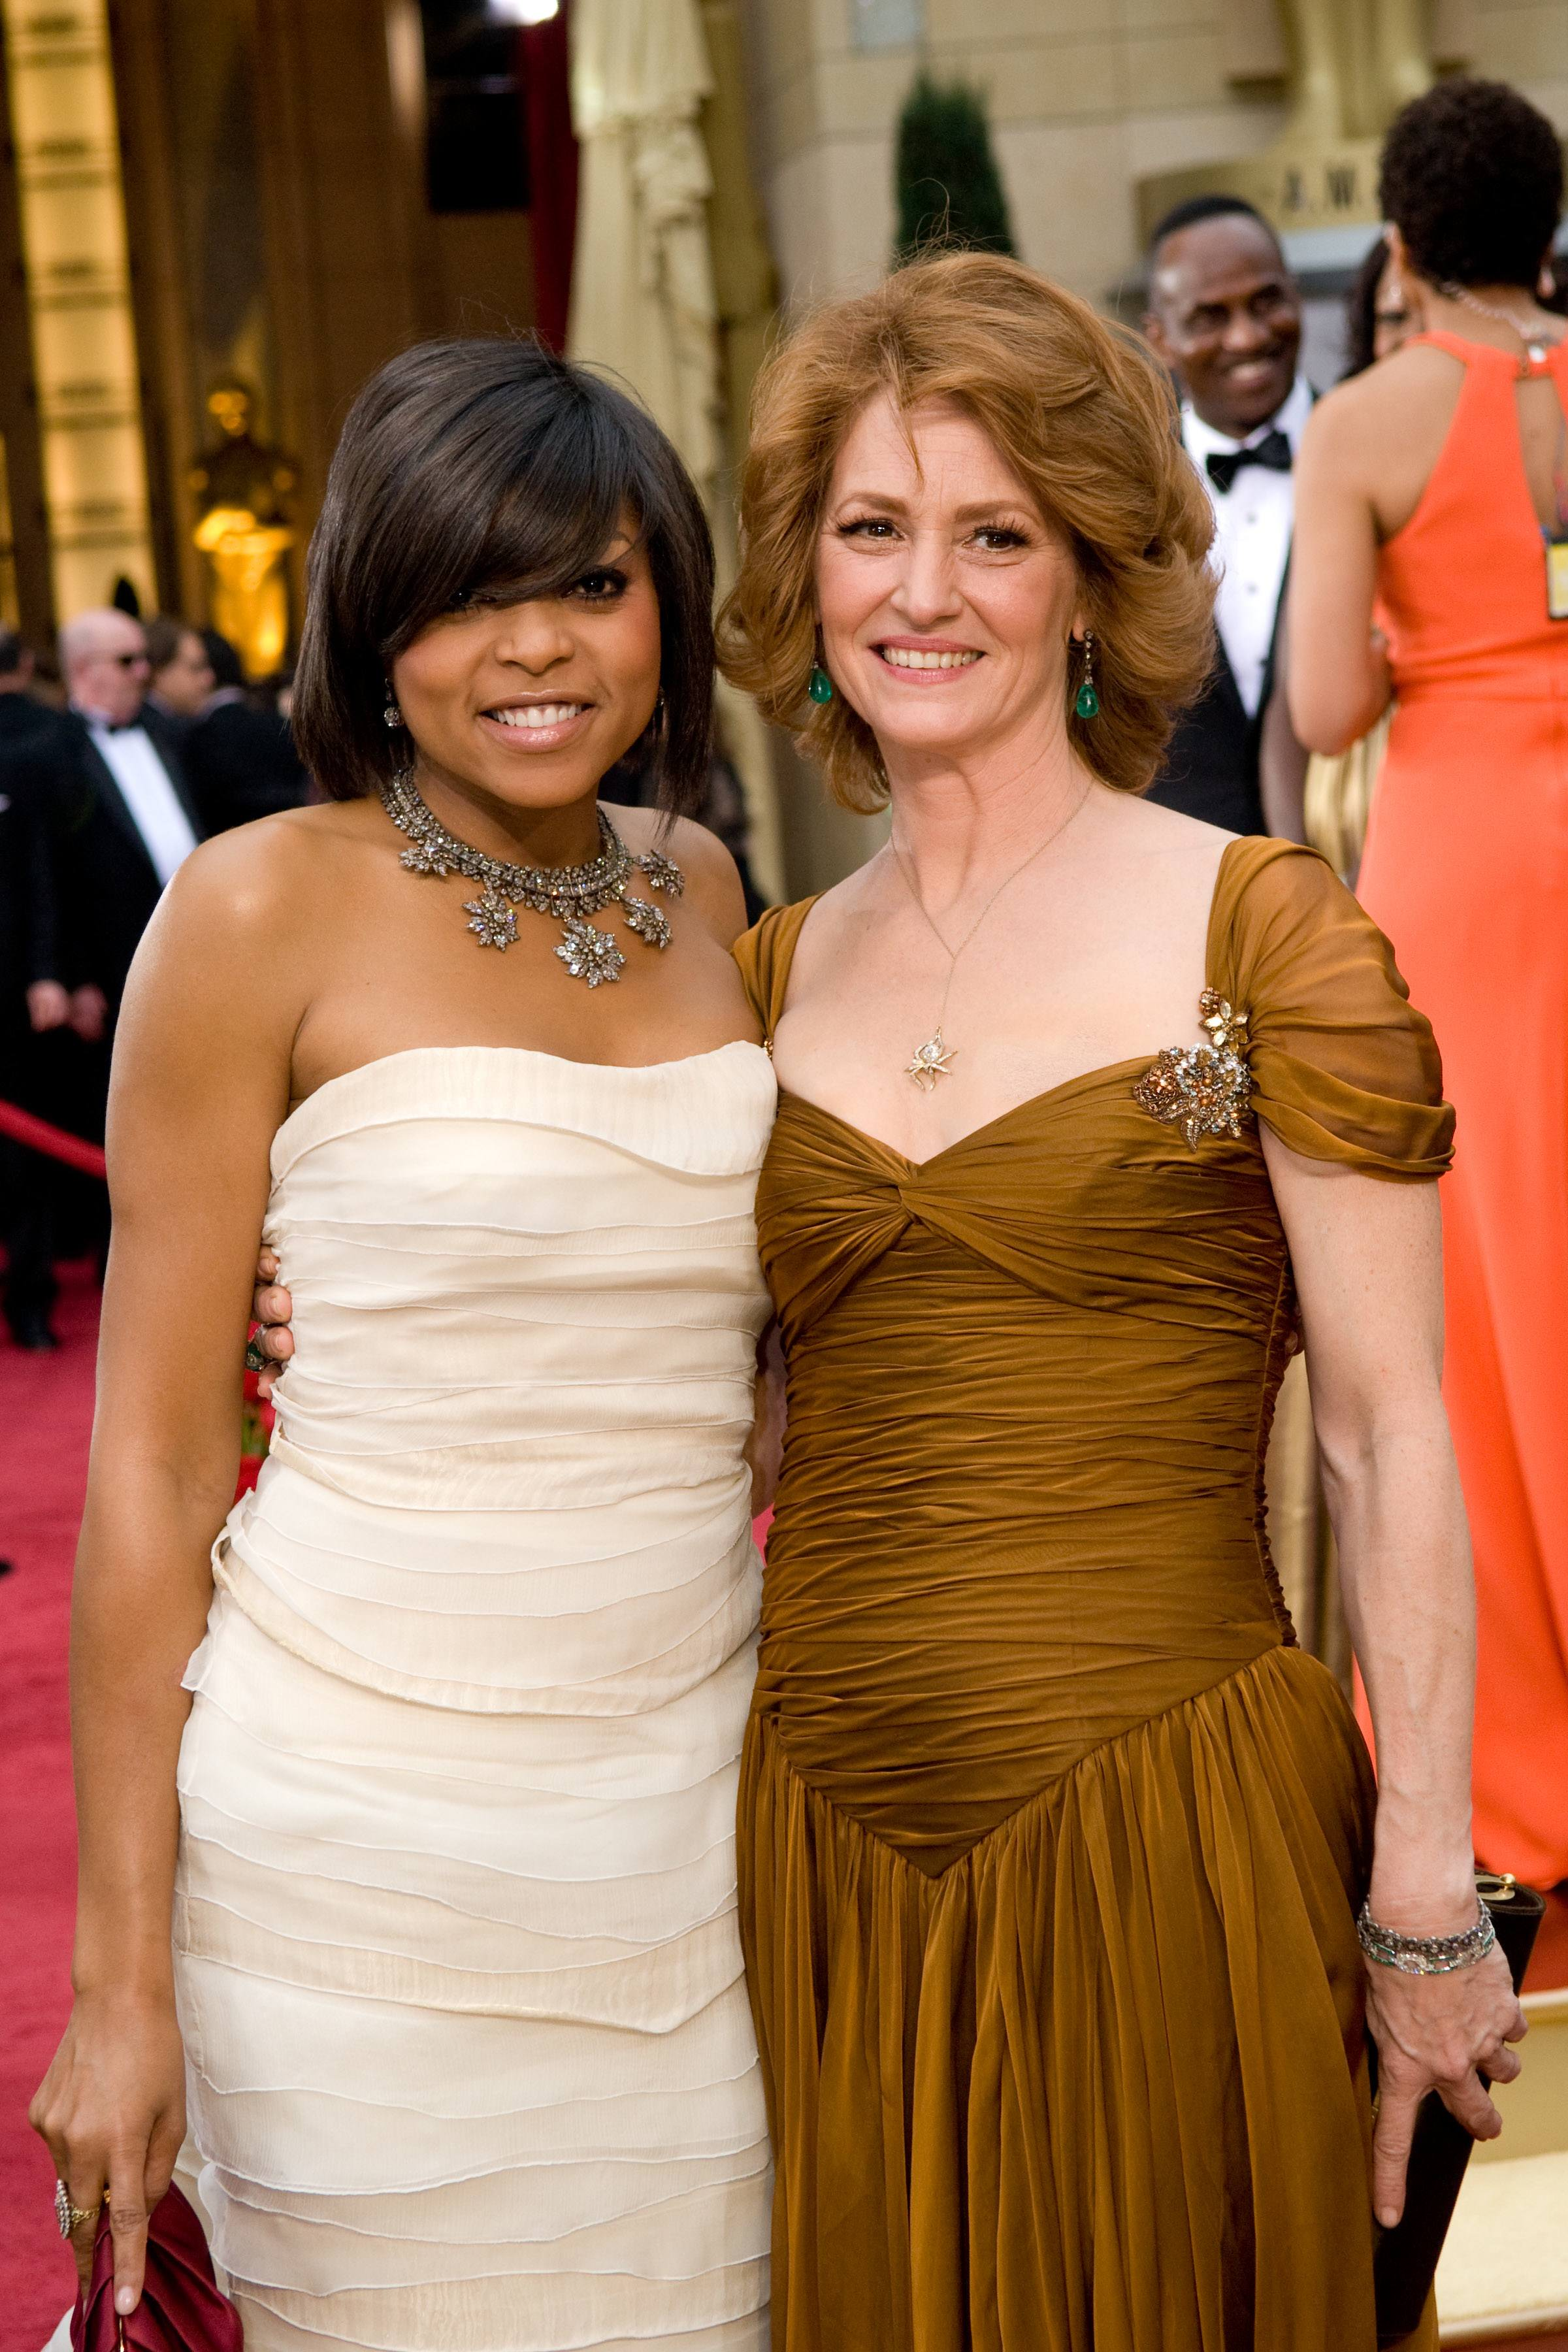 "Taraji P. Henson nominated for Actress in a Supporting Role for her role in ""The Curious Case of Benjamin Button"" and Melissa Leo, nominated for Actress in a Leading Role for her role in ""Frozen River."""